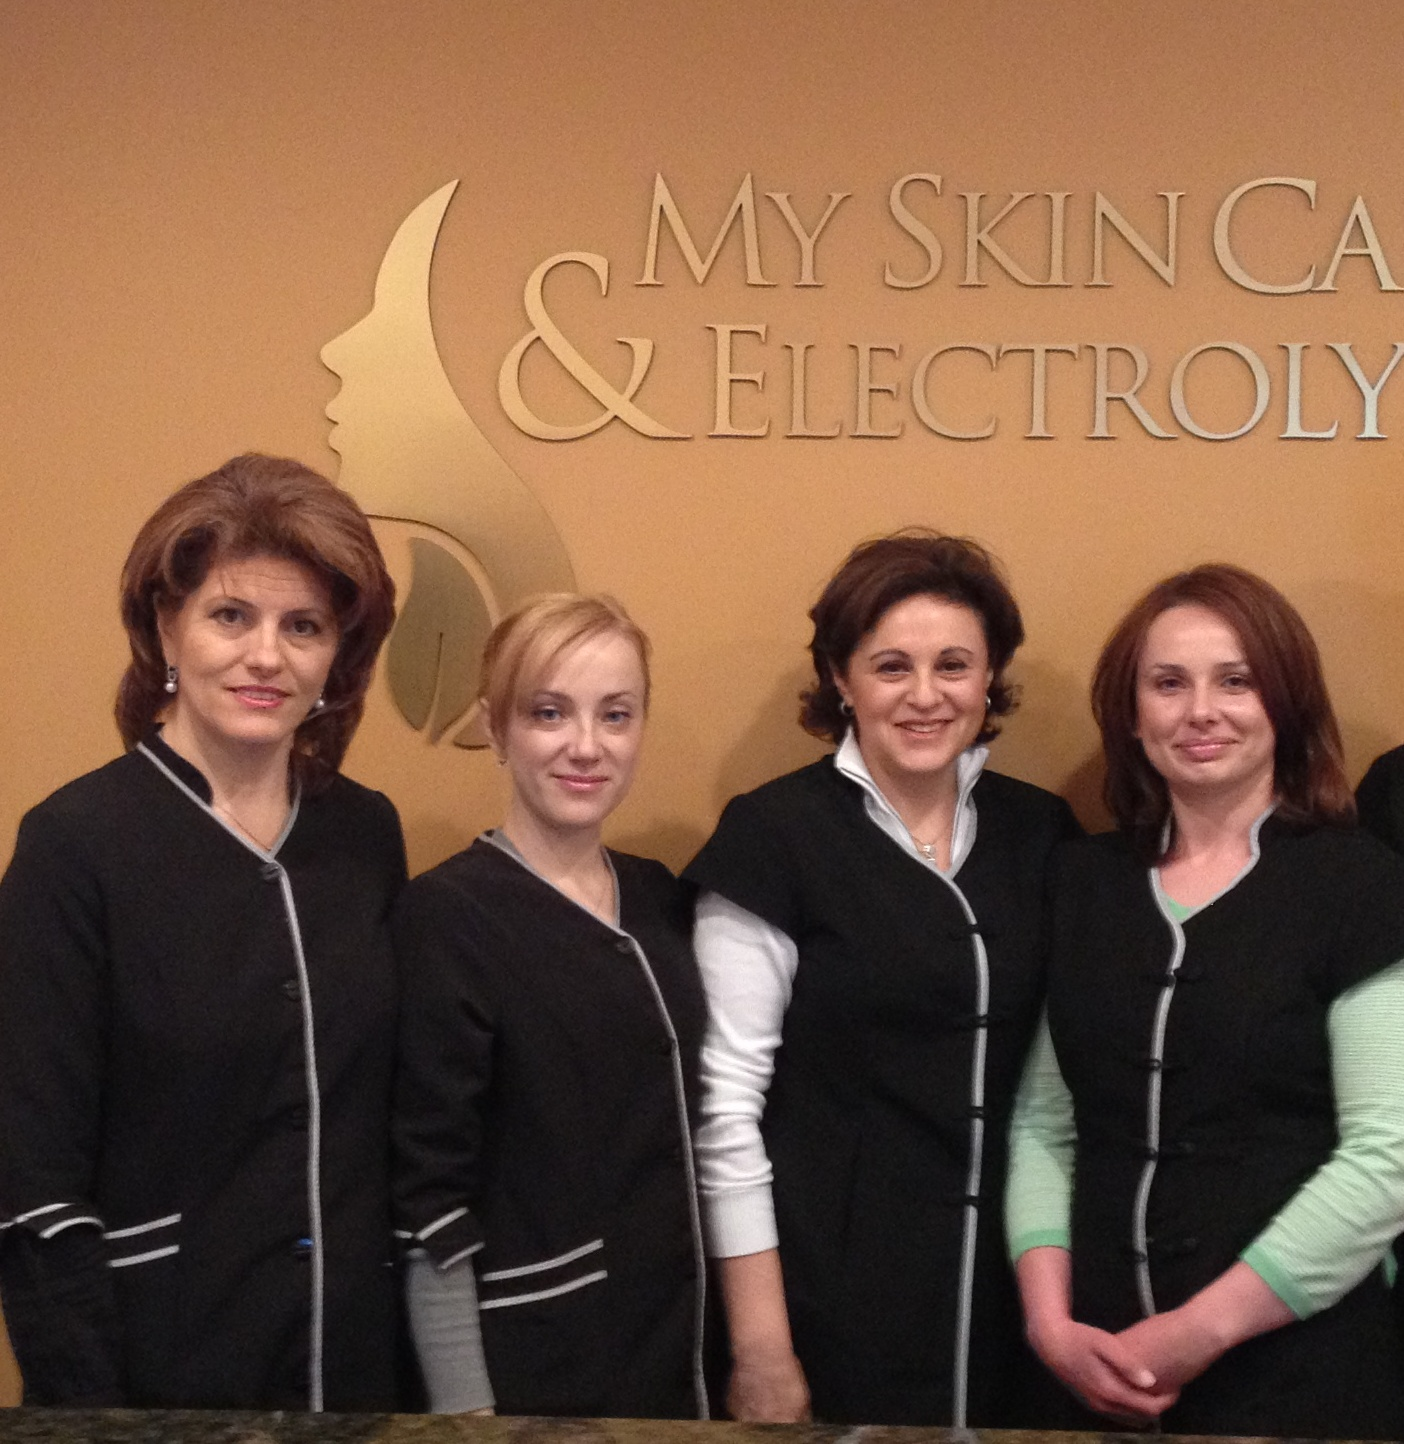 Best Electrolysis Team in NJ